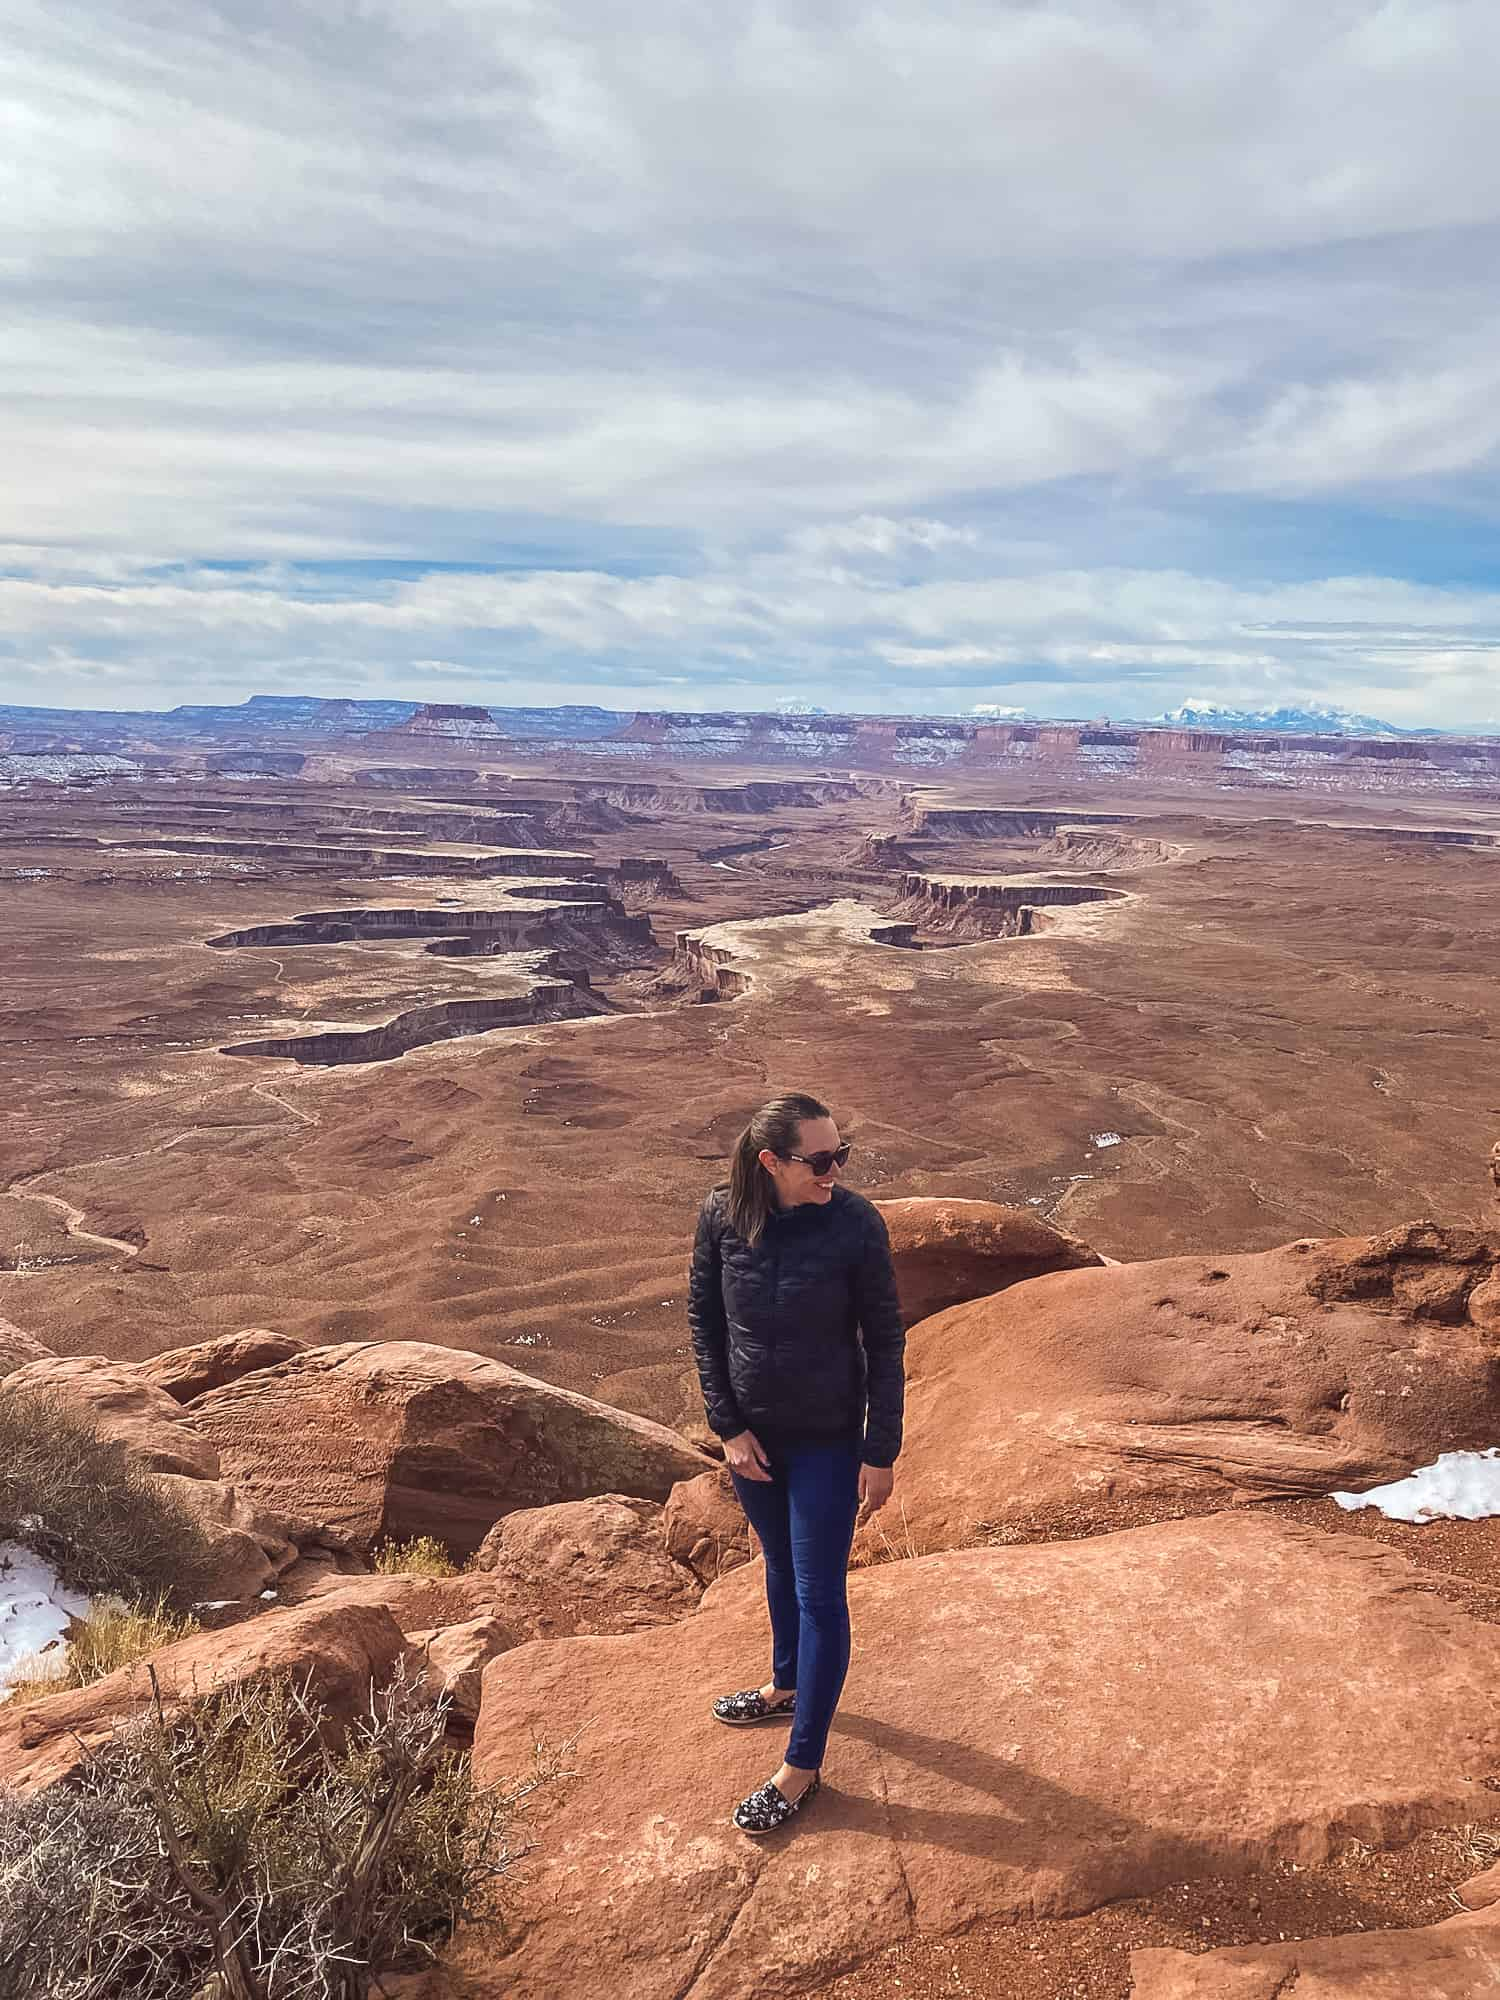 One Day in Canyonlands National Park - Green River Overlook